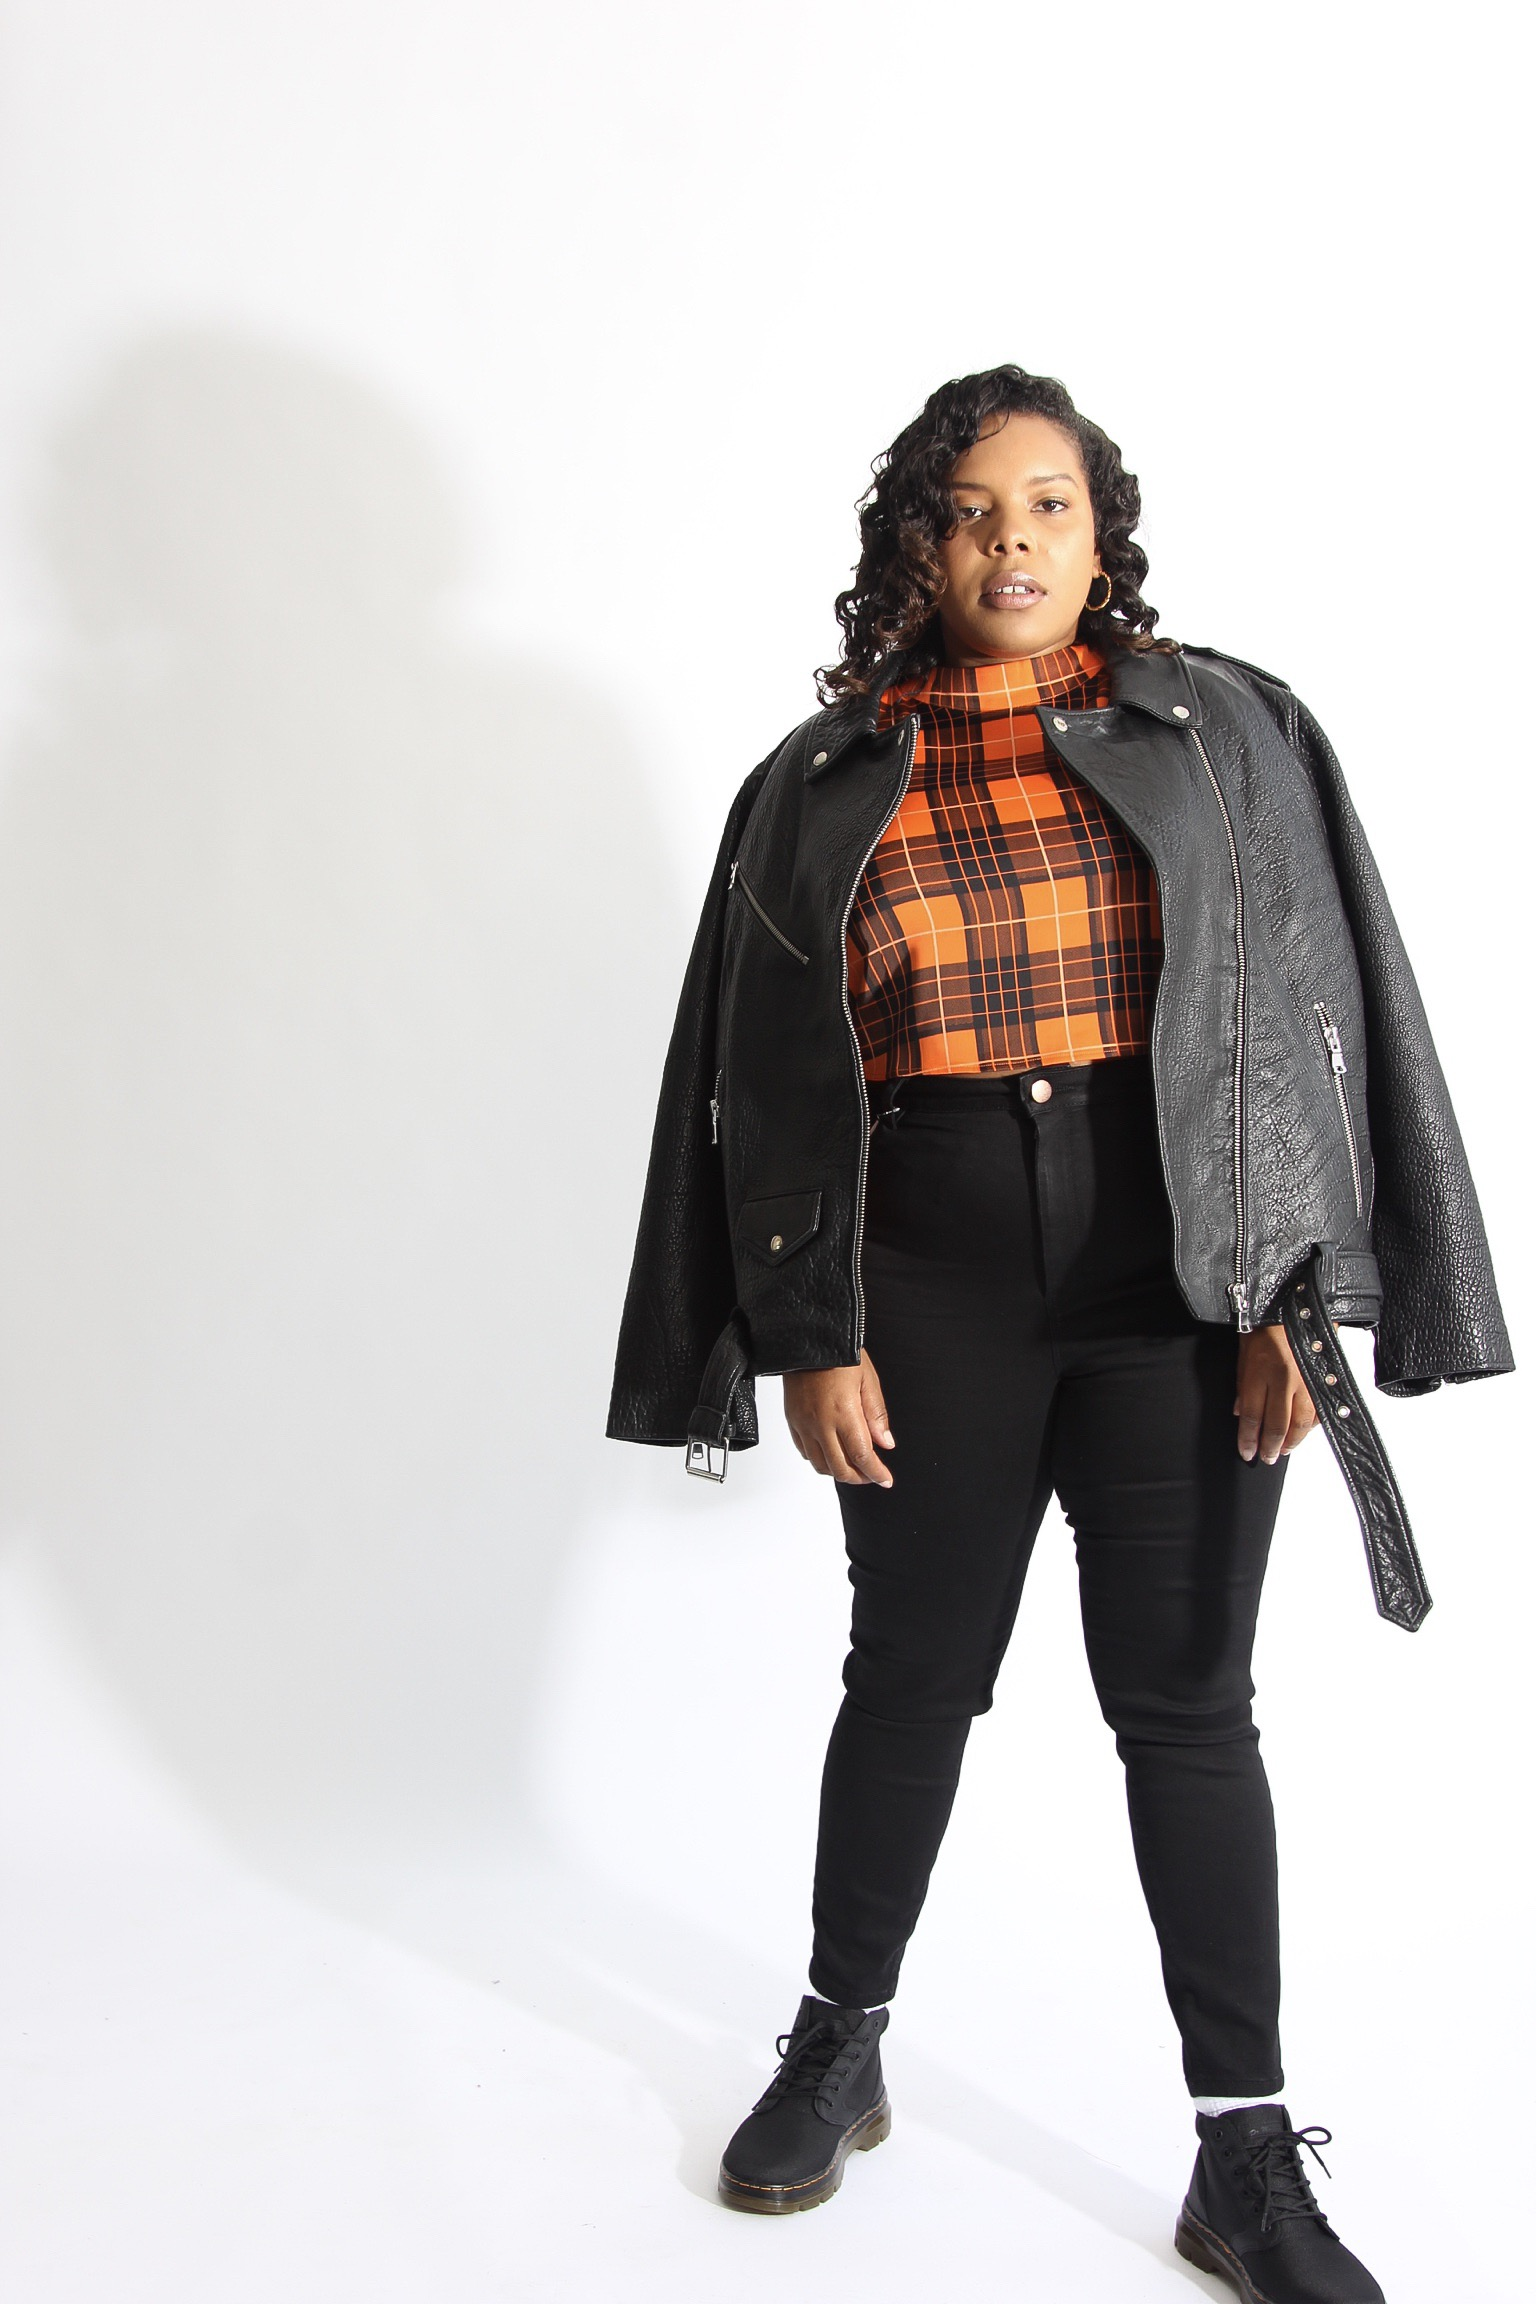 We spoke to the ASOS fashion team about what everyone is